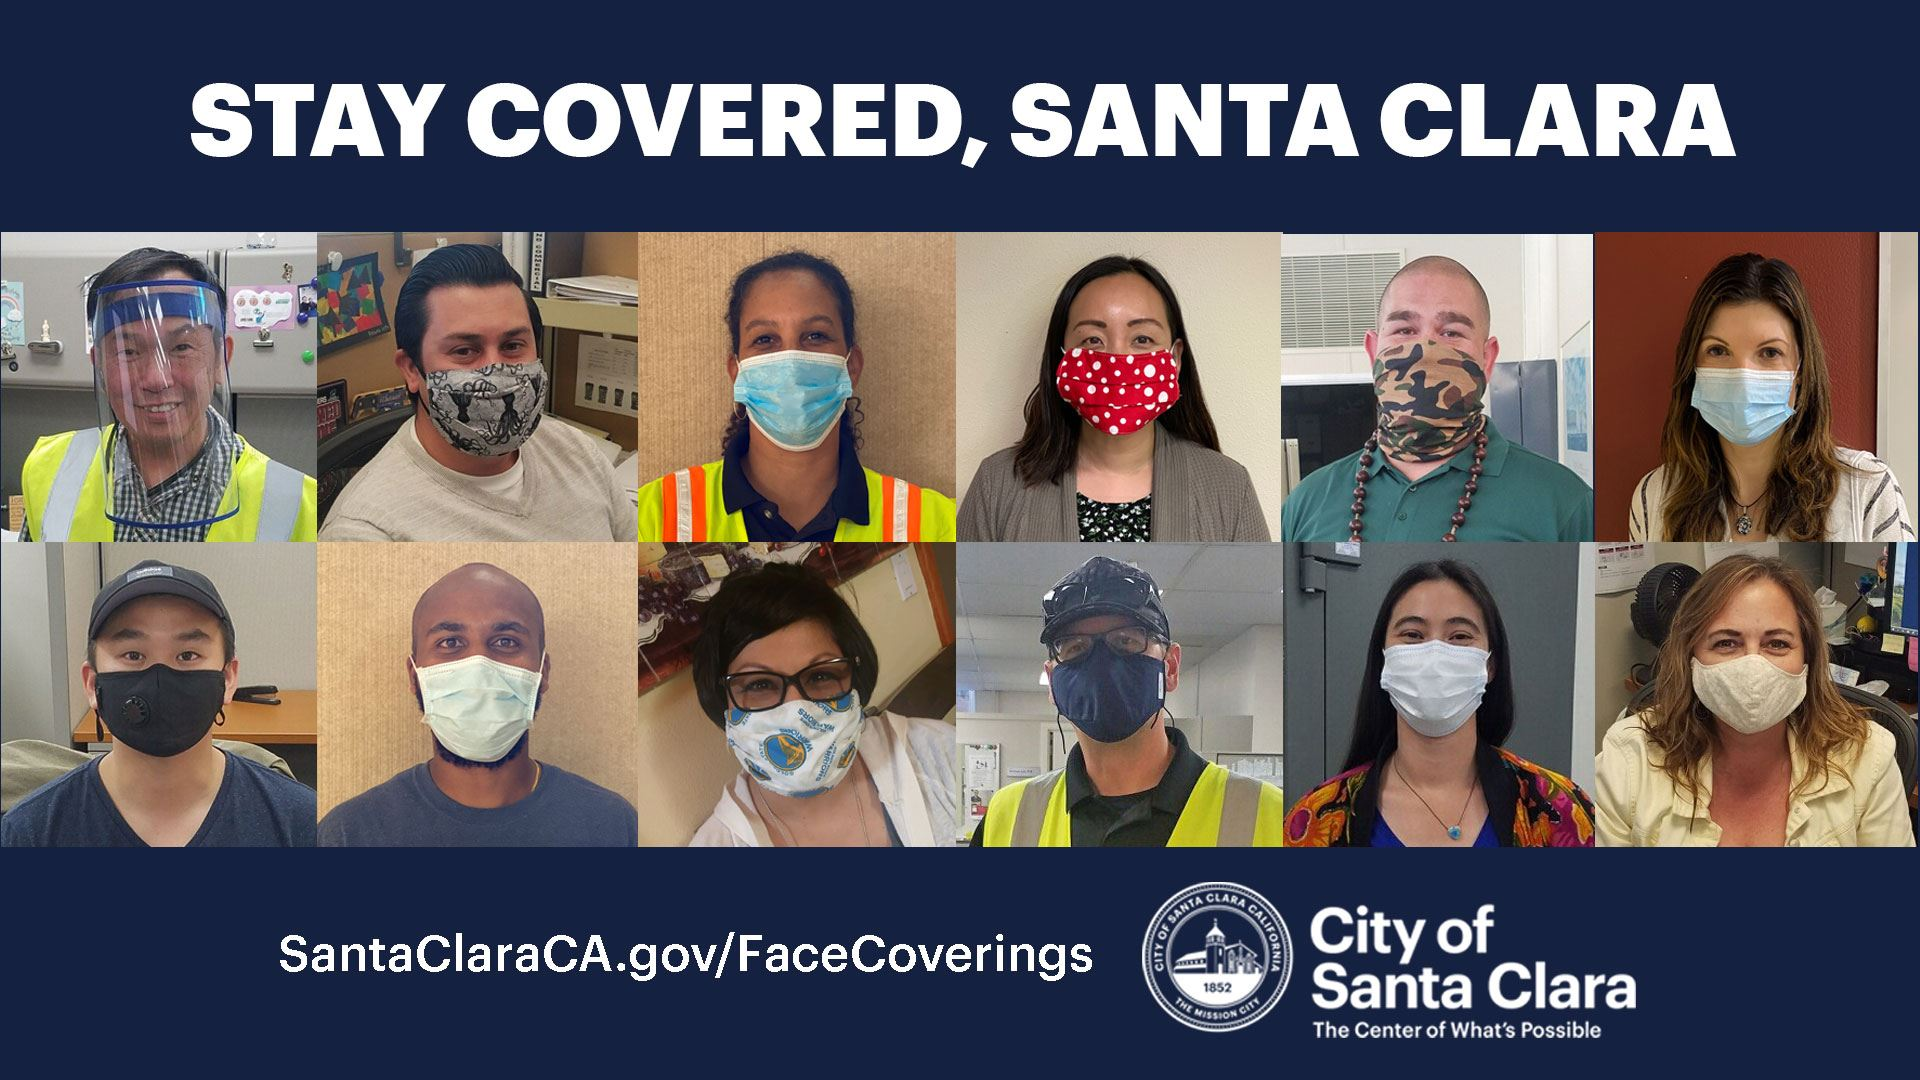 StayCoveredSantaClara-graphic